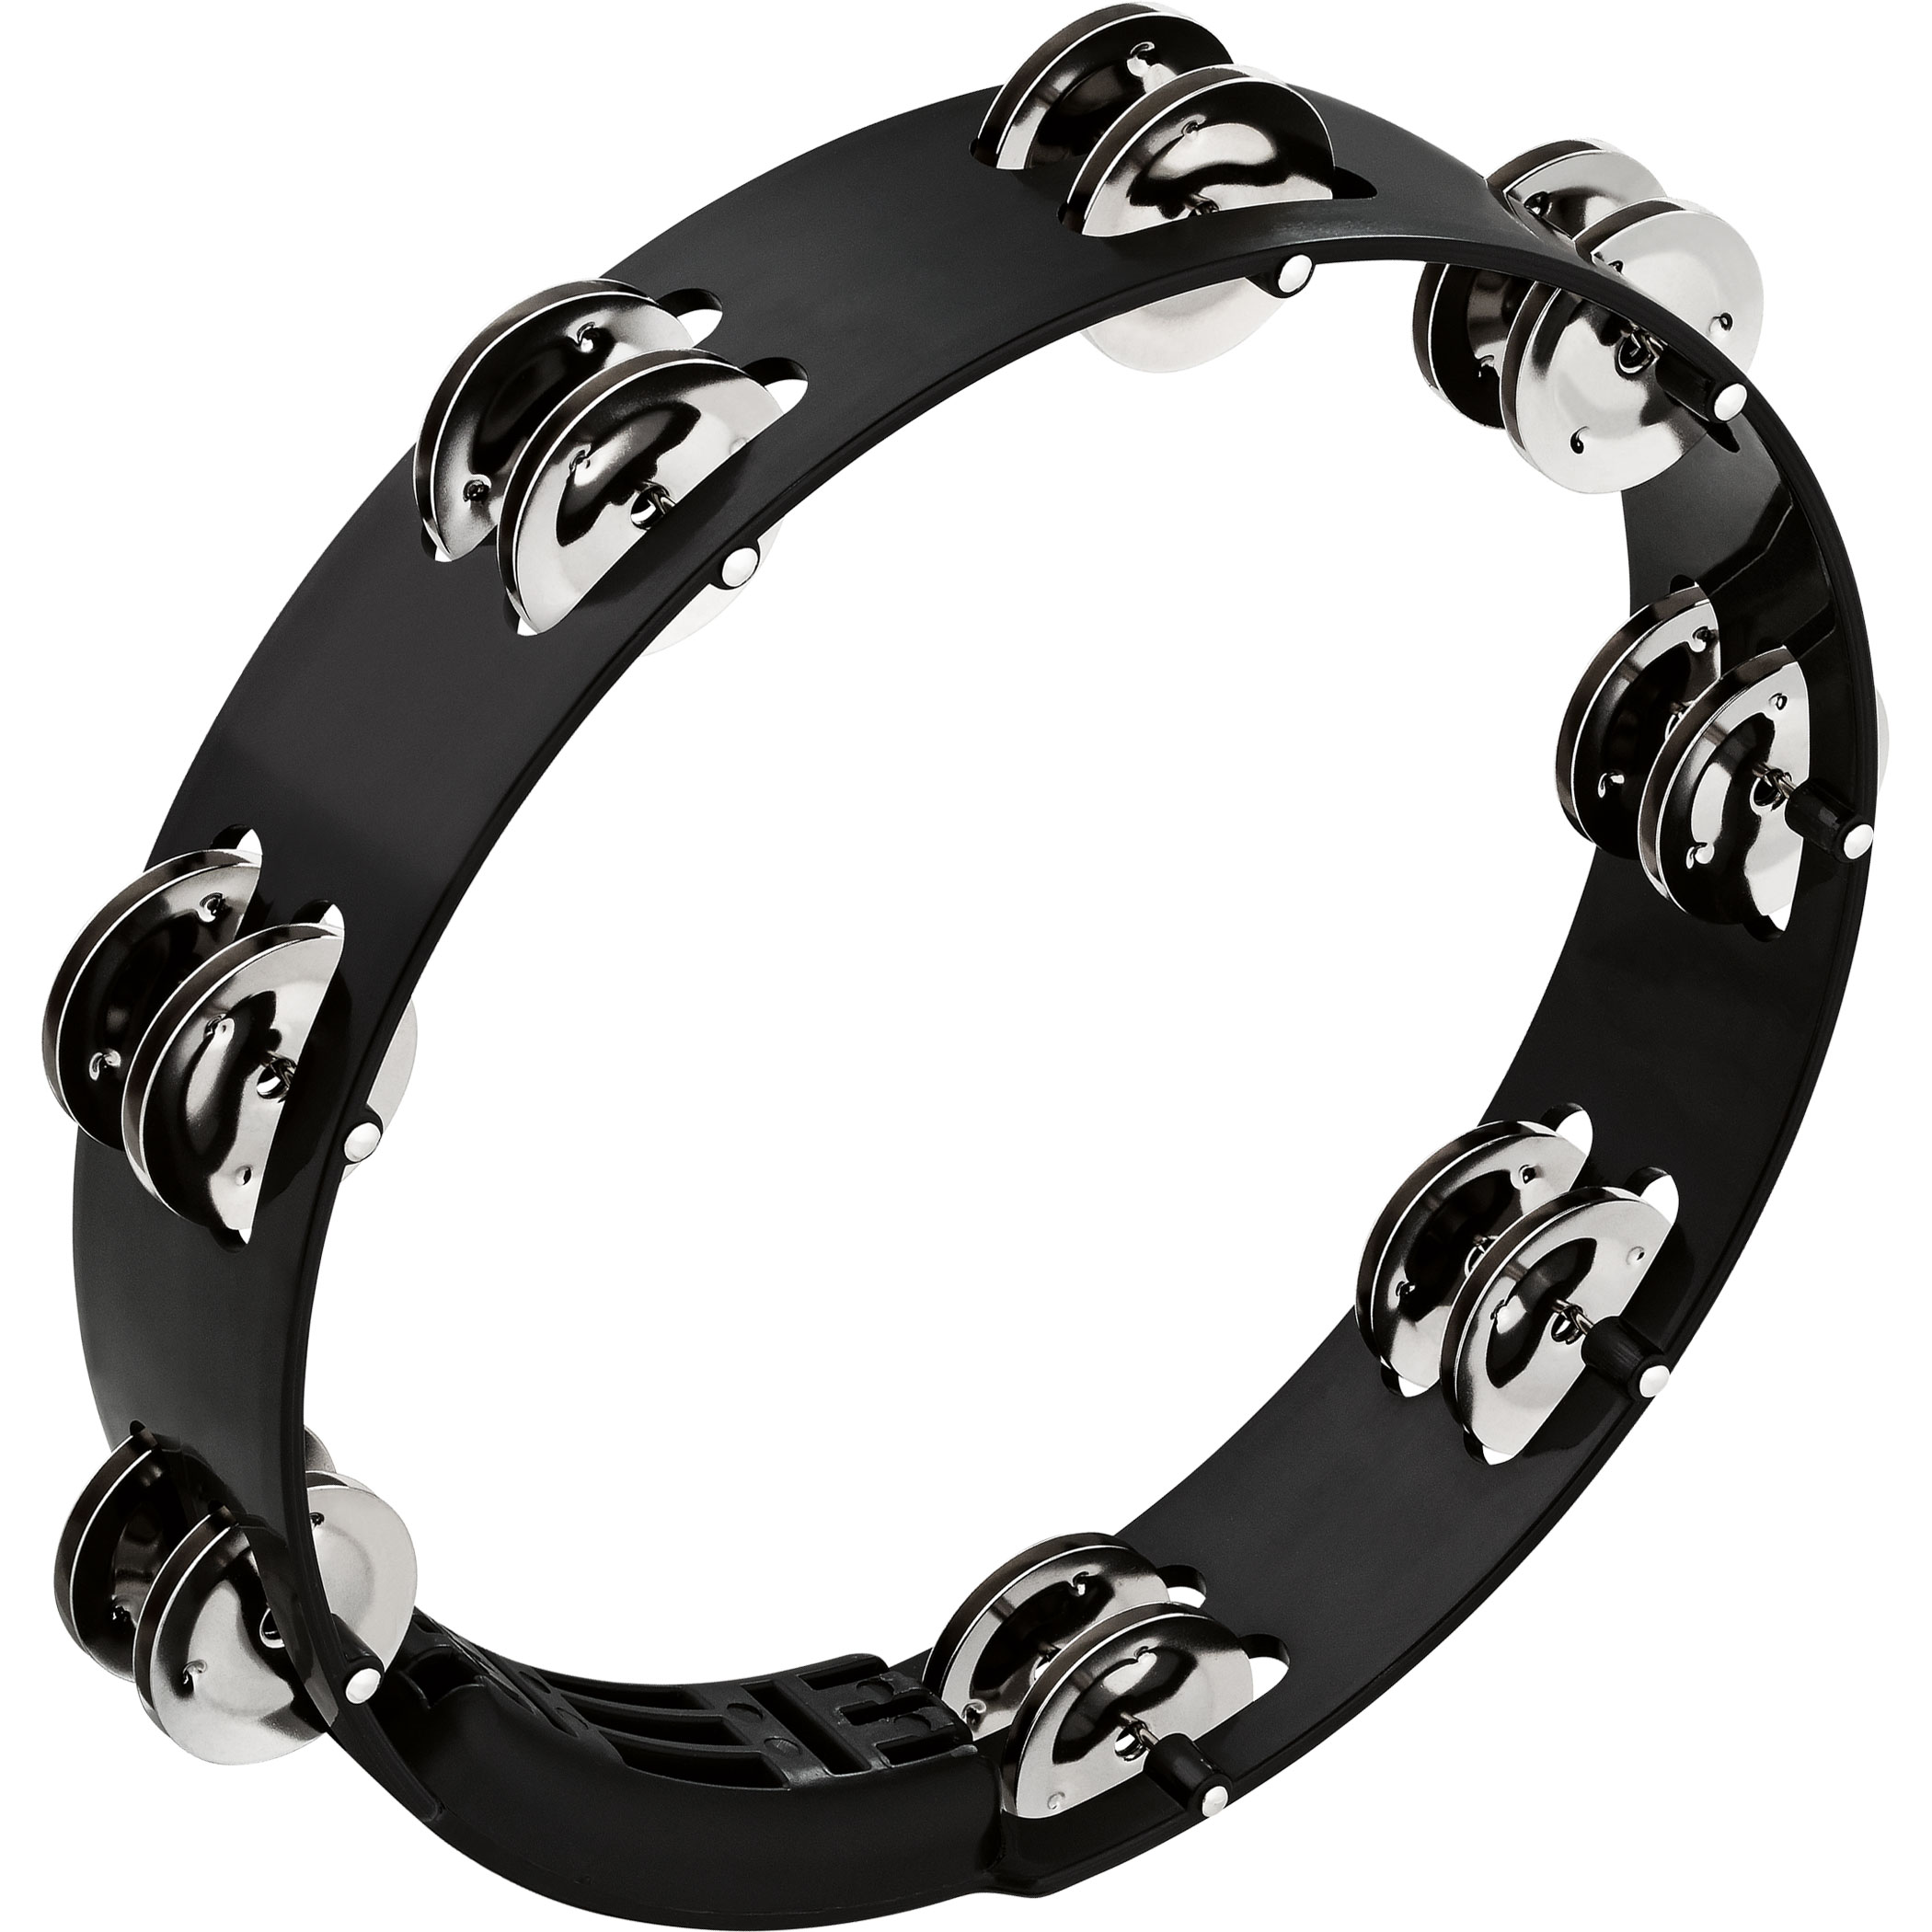 "Meinl 10"" Headliner Double-Row Stainless Steel Tour Tambourine"